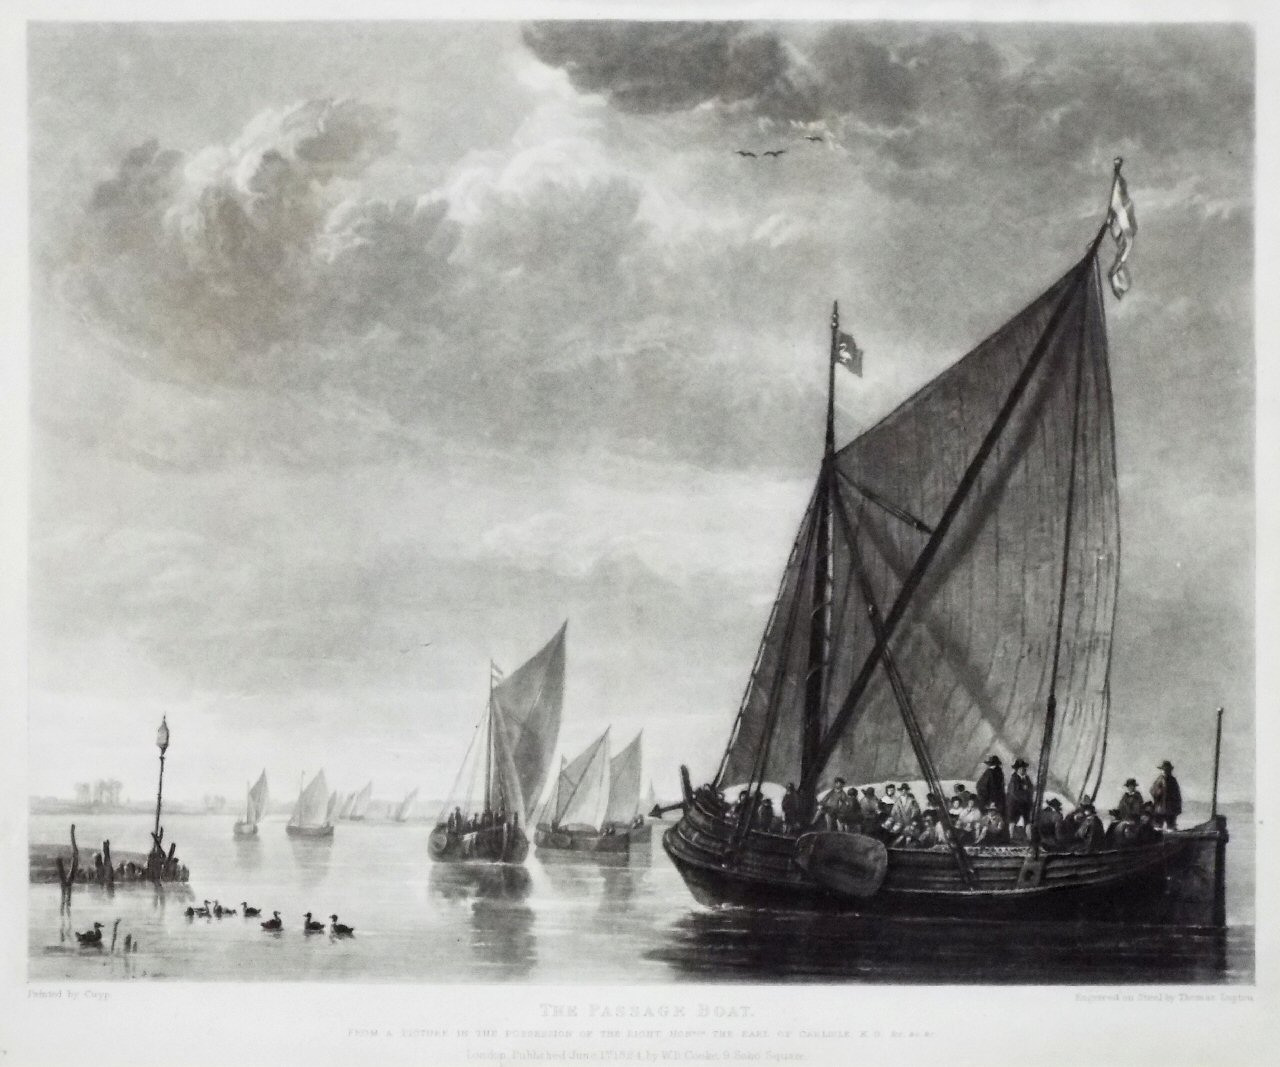 Mezzotint on steel - The Passage Boat - Lupton